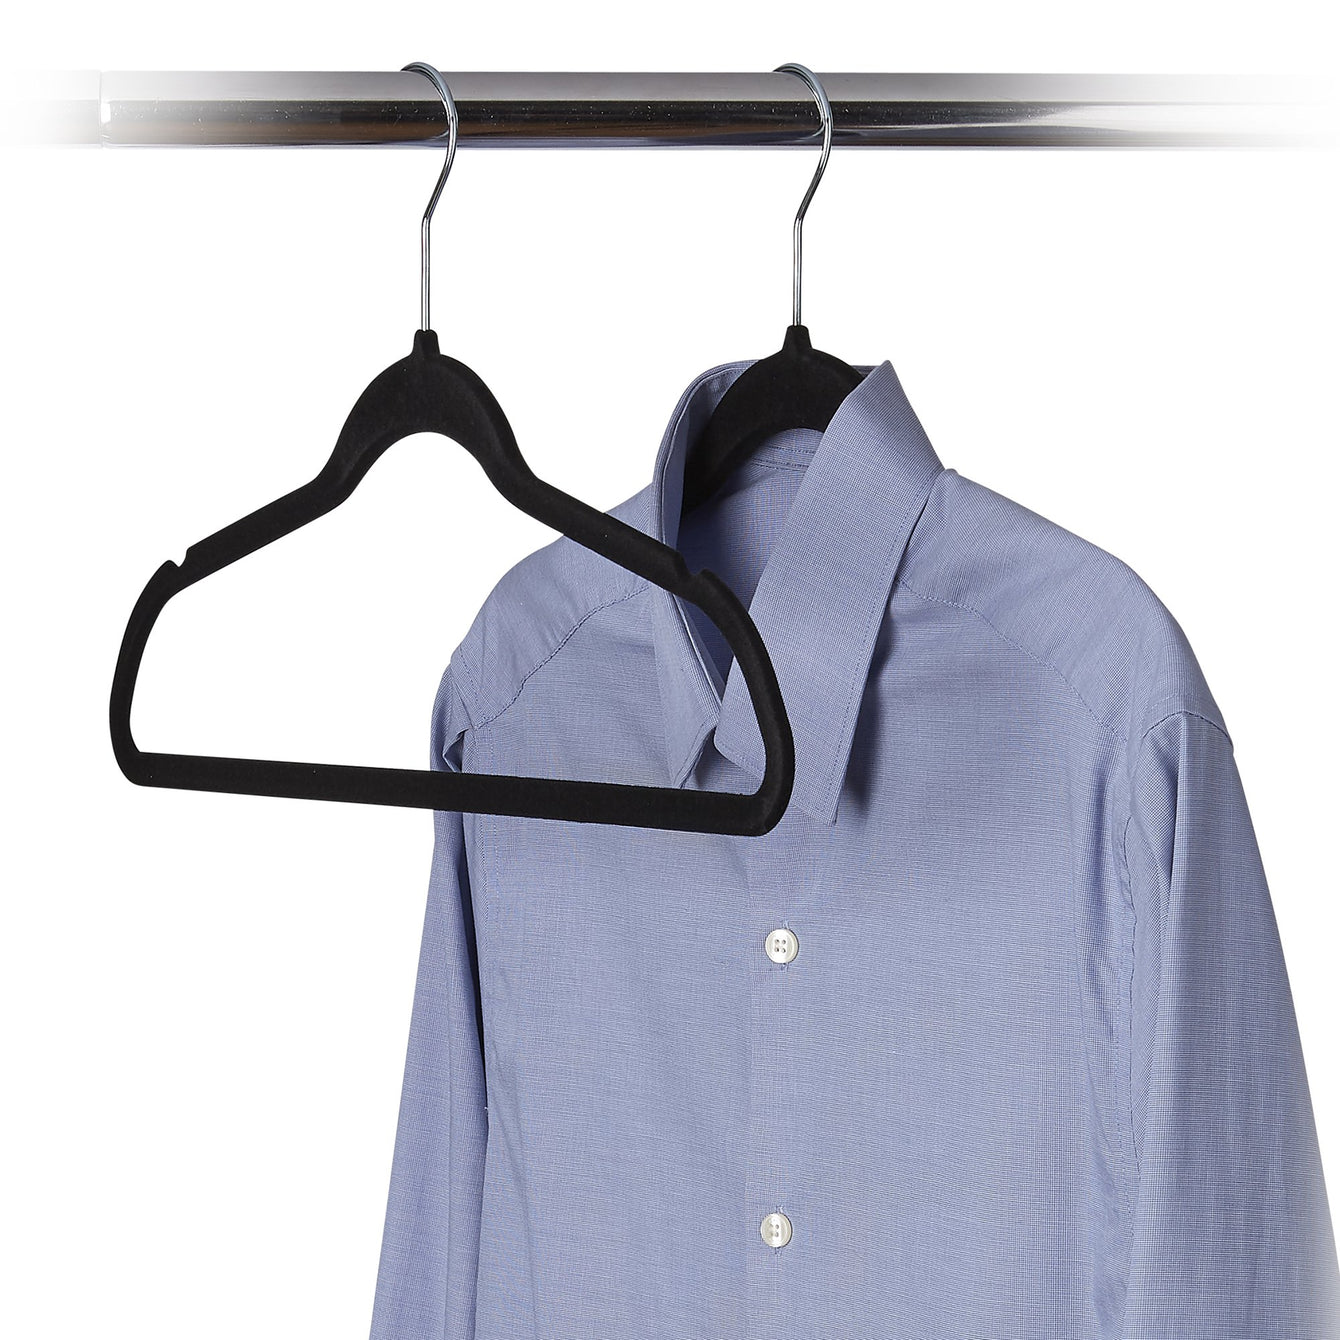 50 Pack Ultra-Slim Felt Non-Slip Clothes Hanger - Black - Style 0680